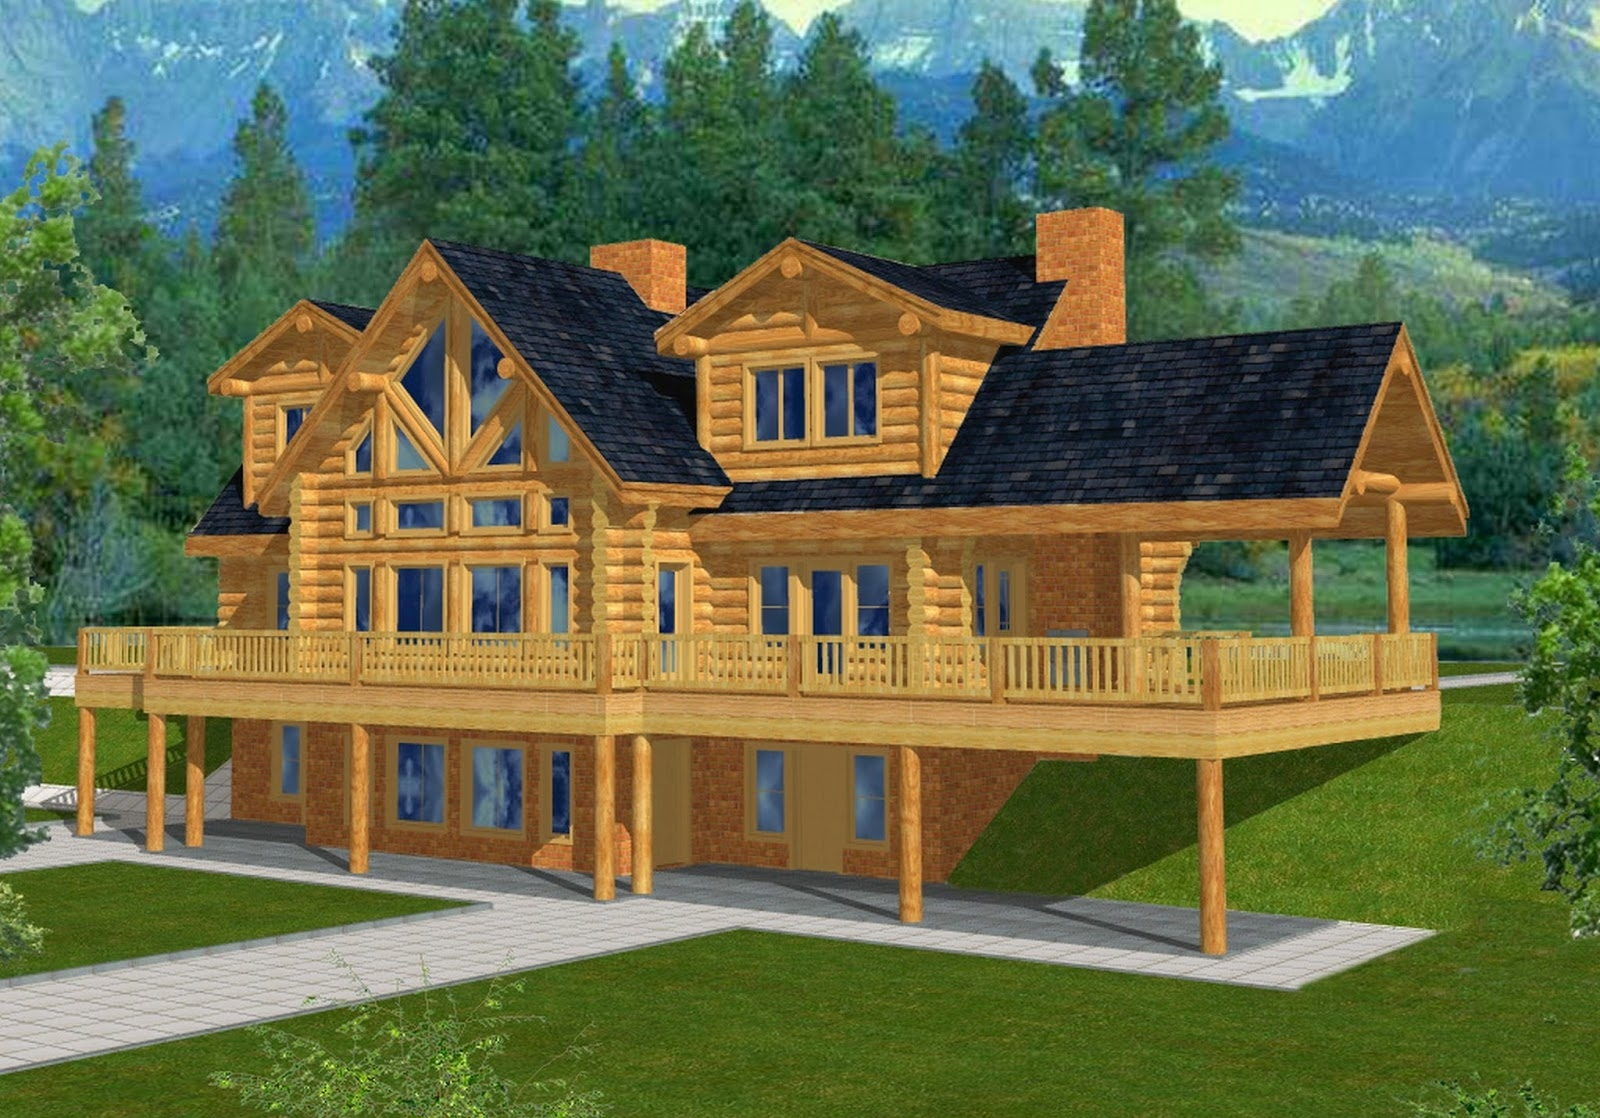 Cabin House Plans With Walkout Basement Cabin House Plans With Walkout Basement basement houses 1600 X 1118